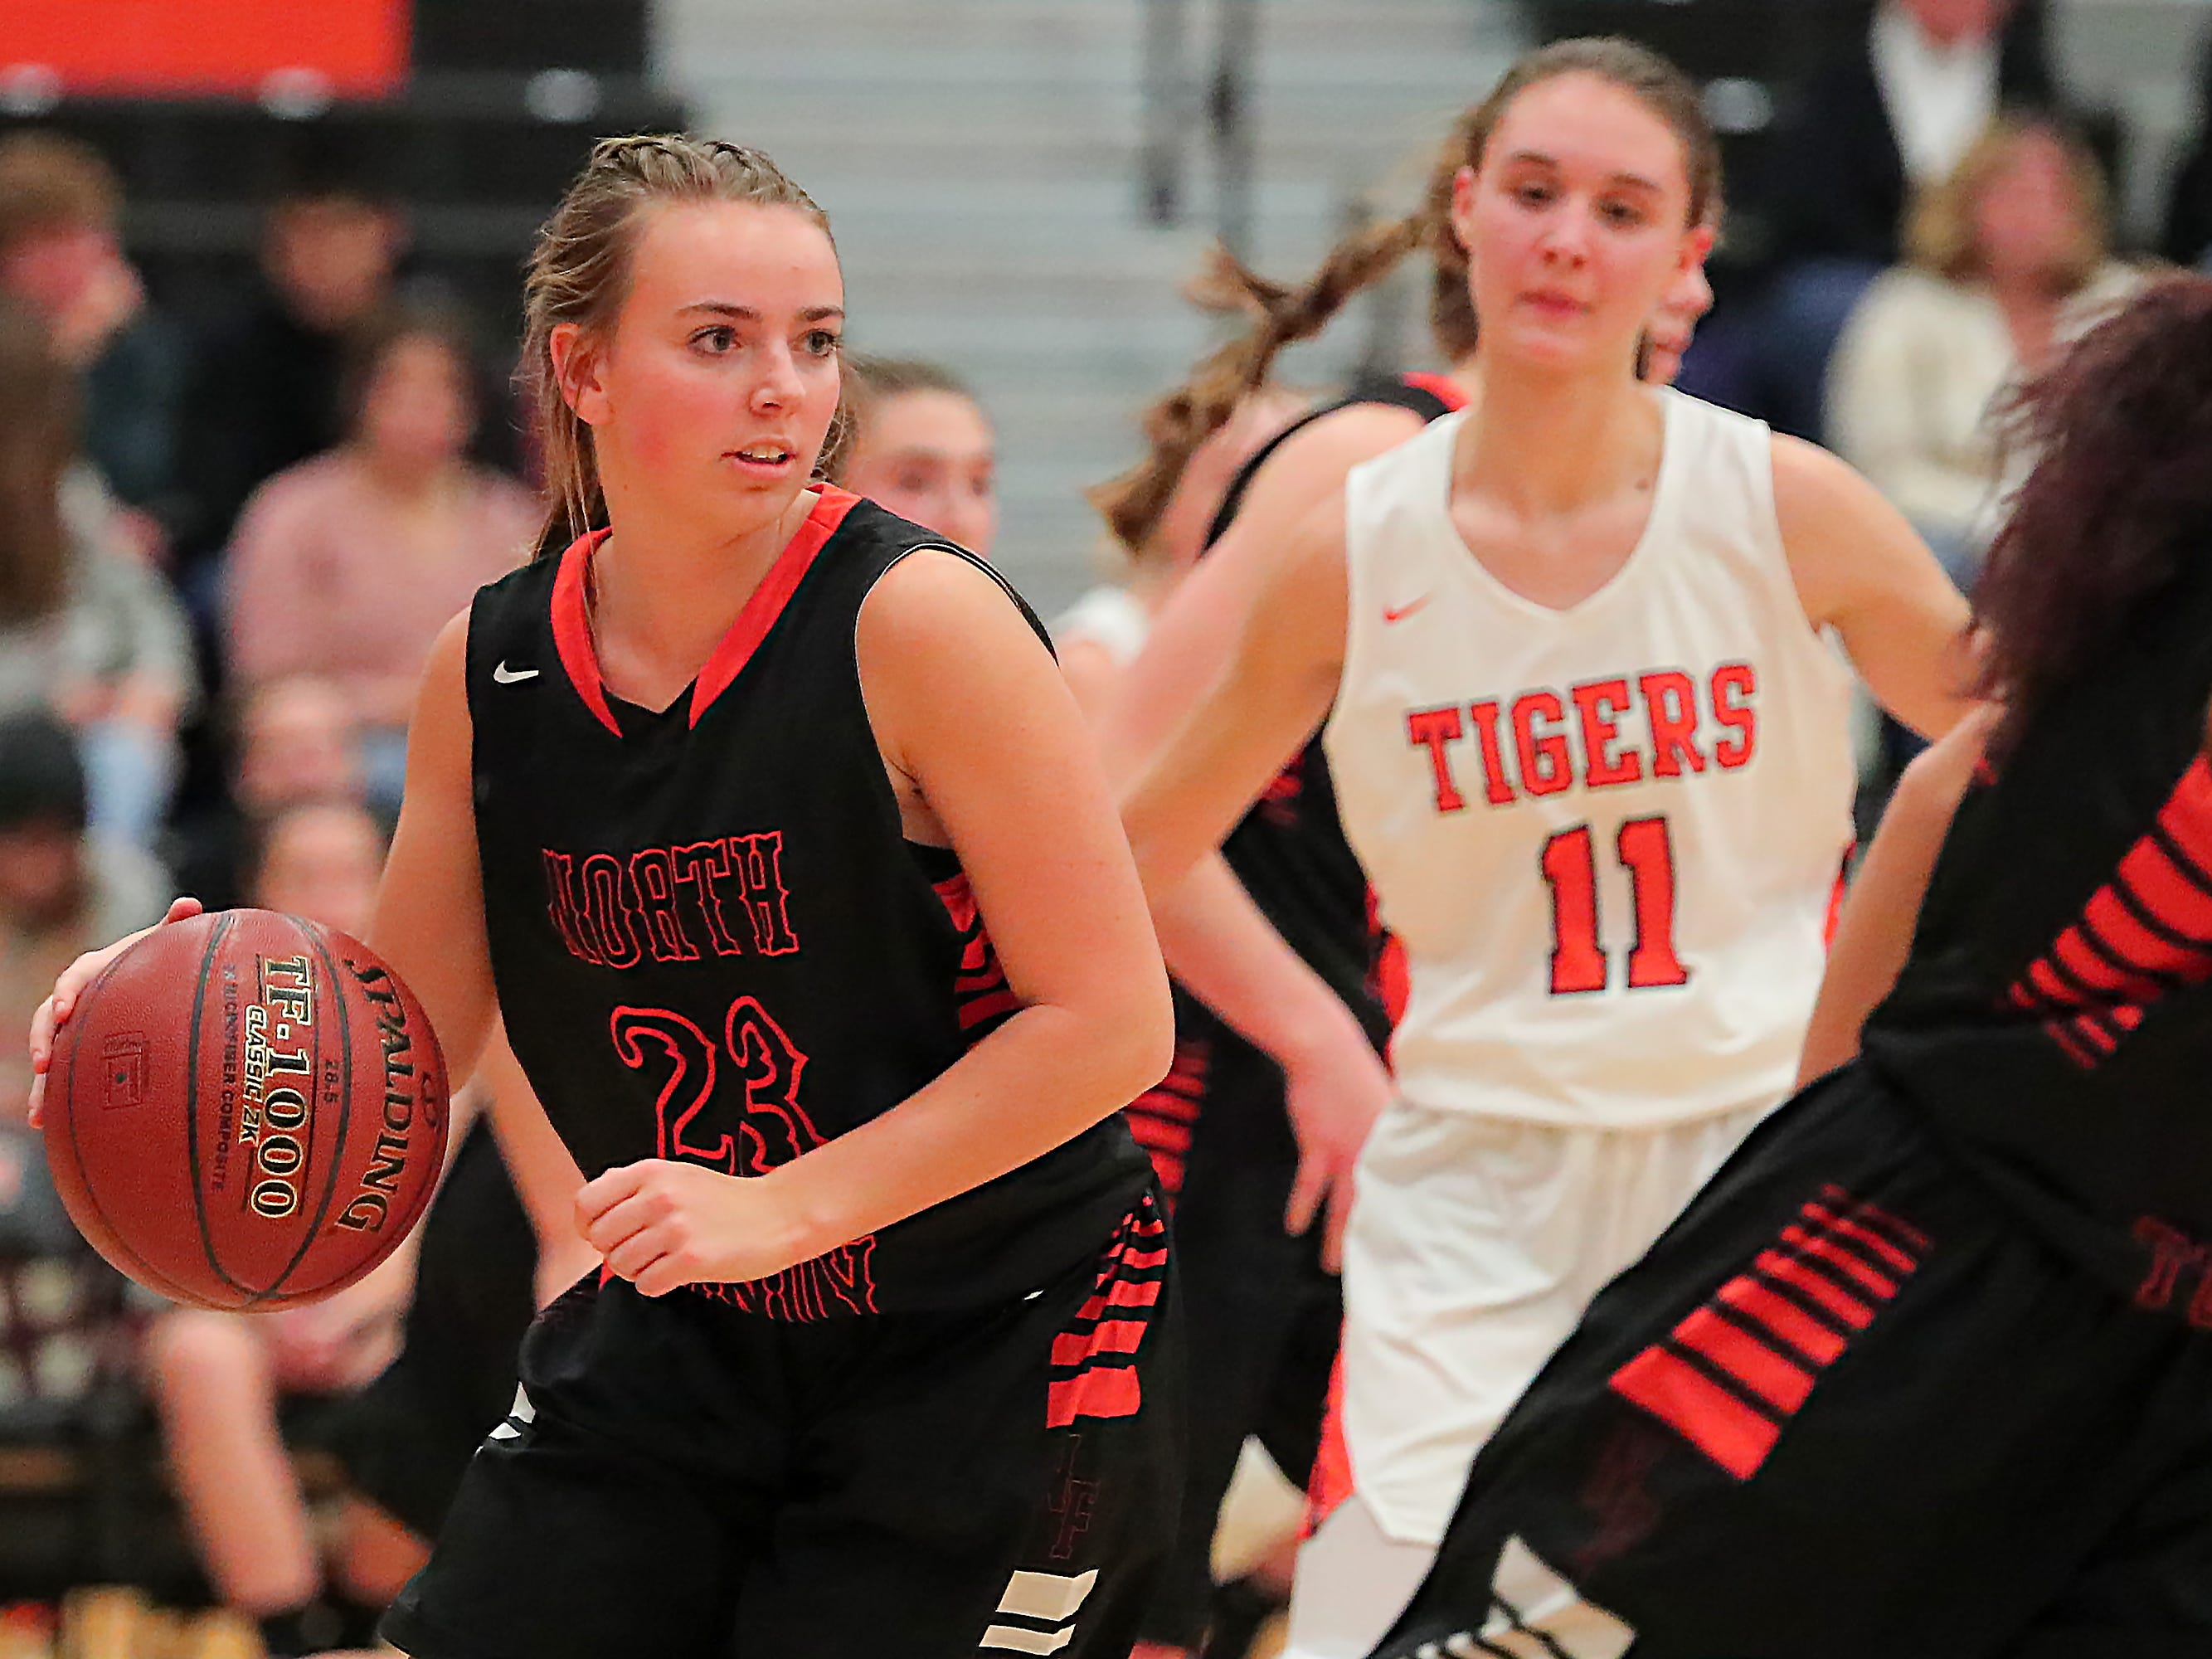 Jordyn Stettbacher (23) of North Fond du Lac looks for someone to pass the ball. The Ripon Tigers hosted the North Fond du Lac Orioles in a non-conference basketball game Thursday evening, November 15, 2018.